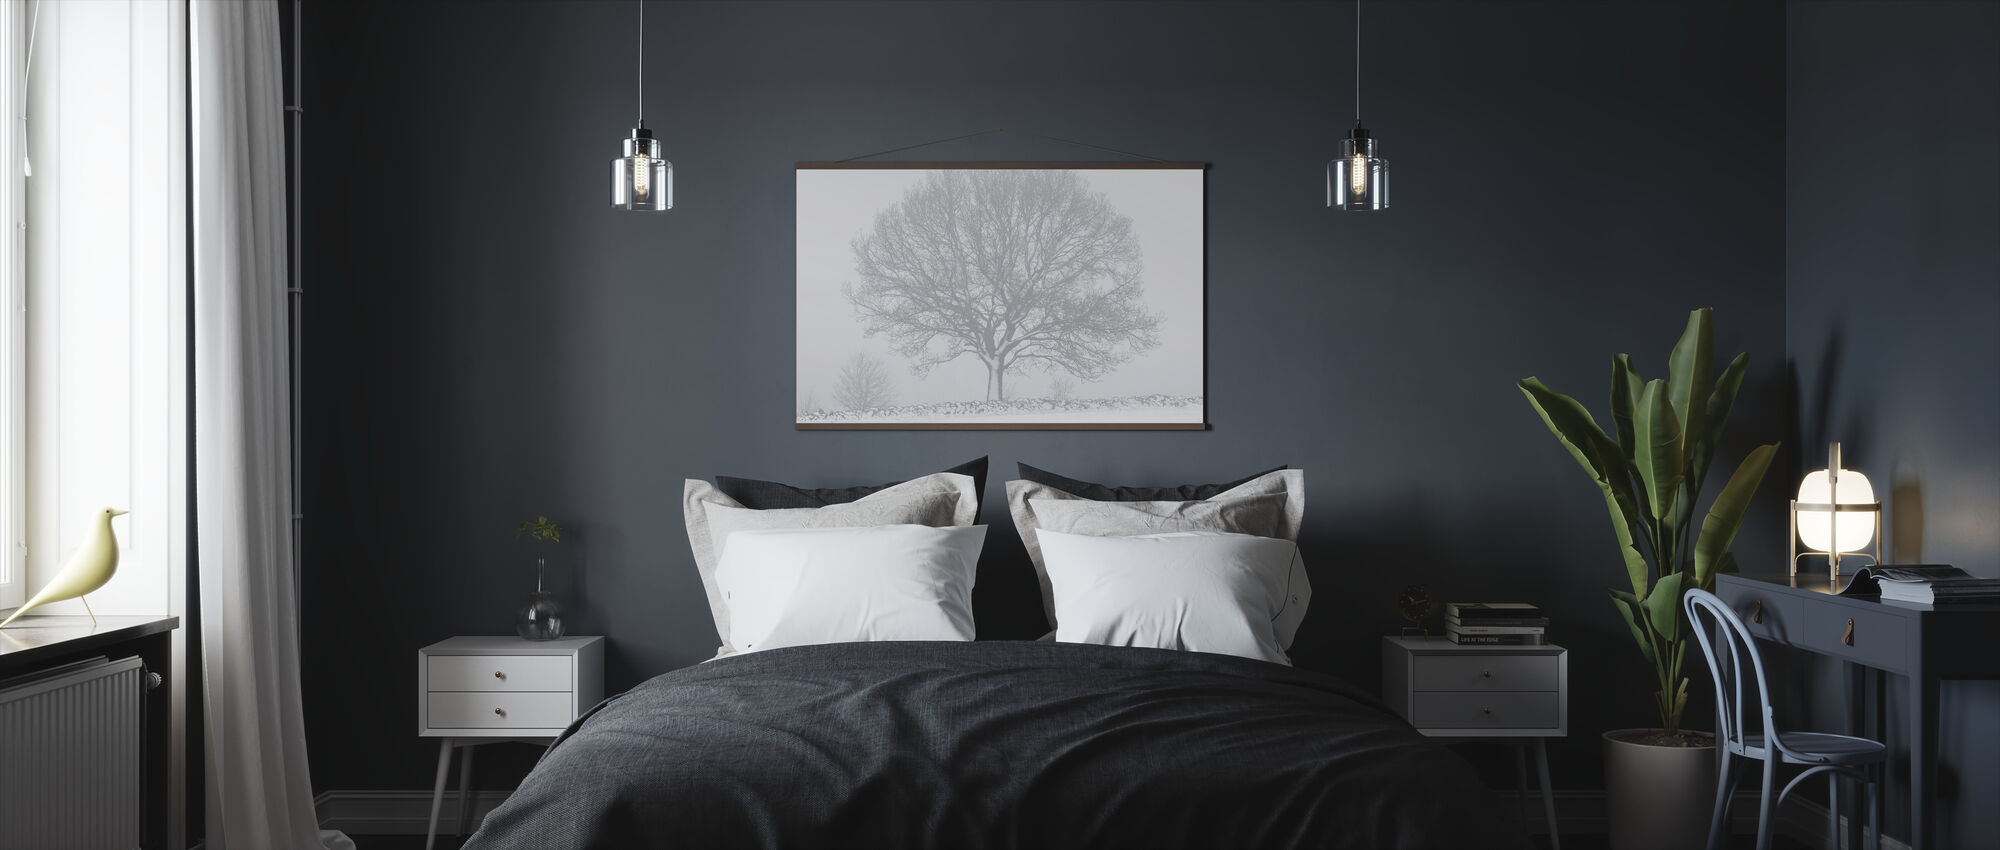 Winter Tree by Stone Wall - Poster - Bedroom